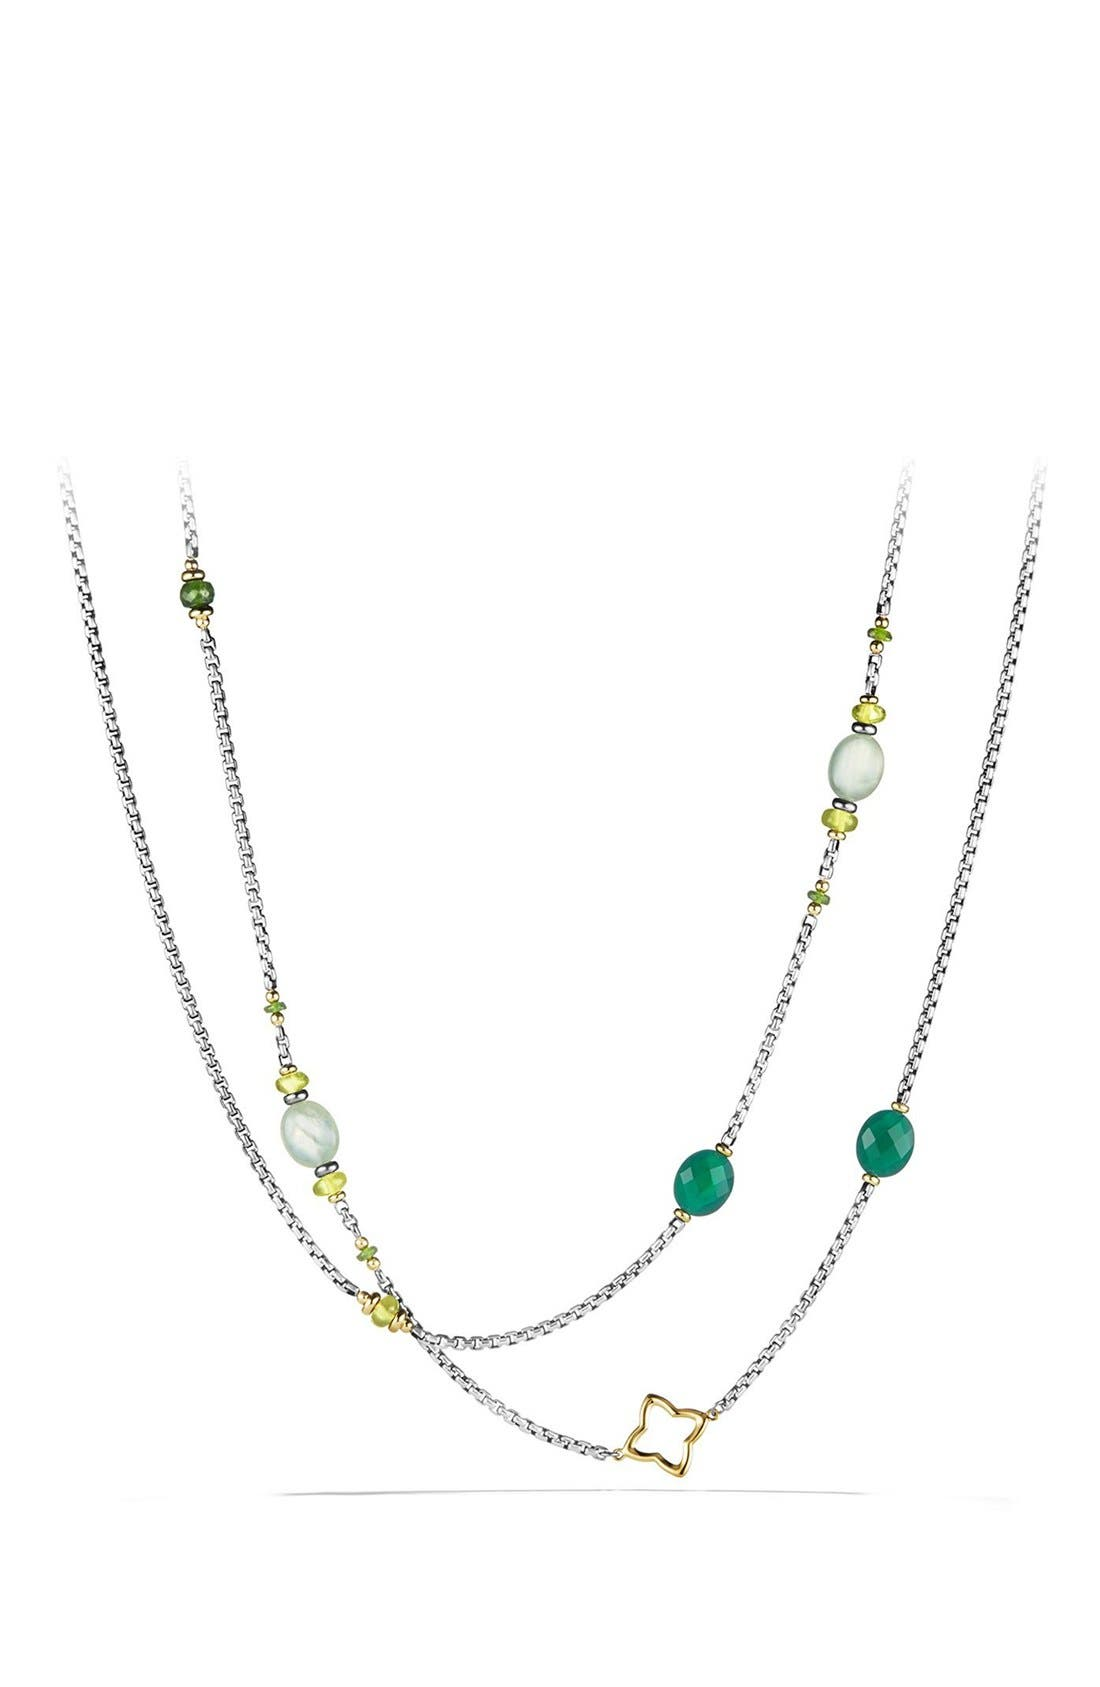 'Bead and Chain' Necklace,                         Main,                         color, Silver/ Gold/ Green Multi